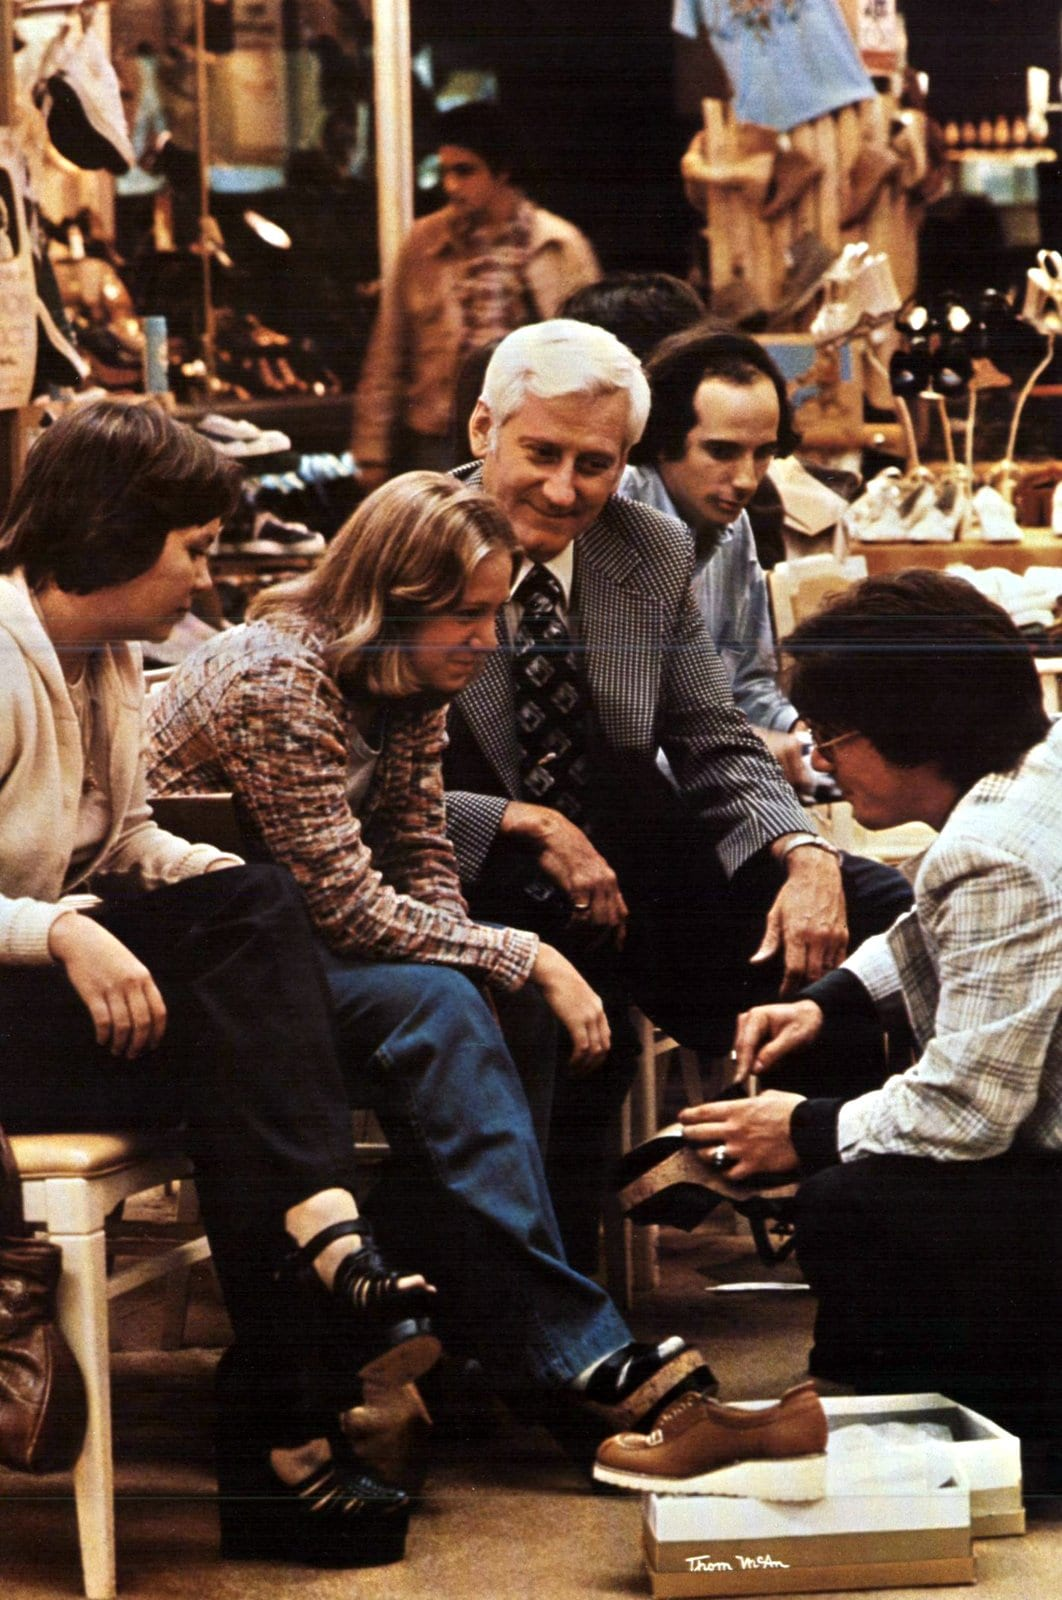 Trying on shoes at a vintage Thom McAn shoe store (1975)